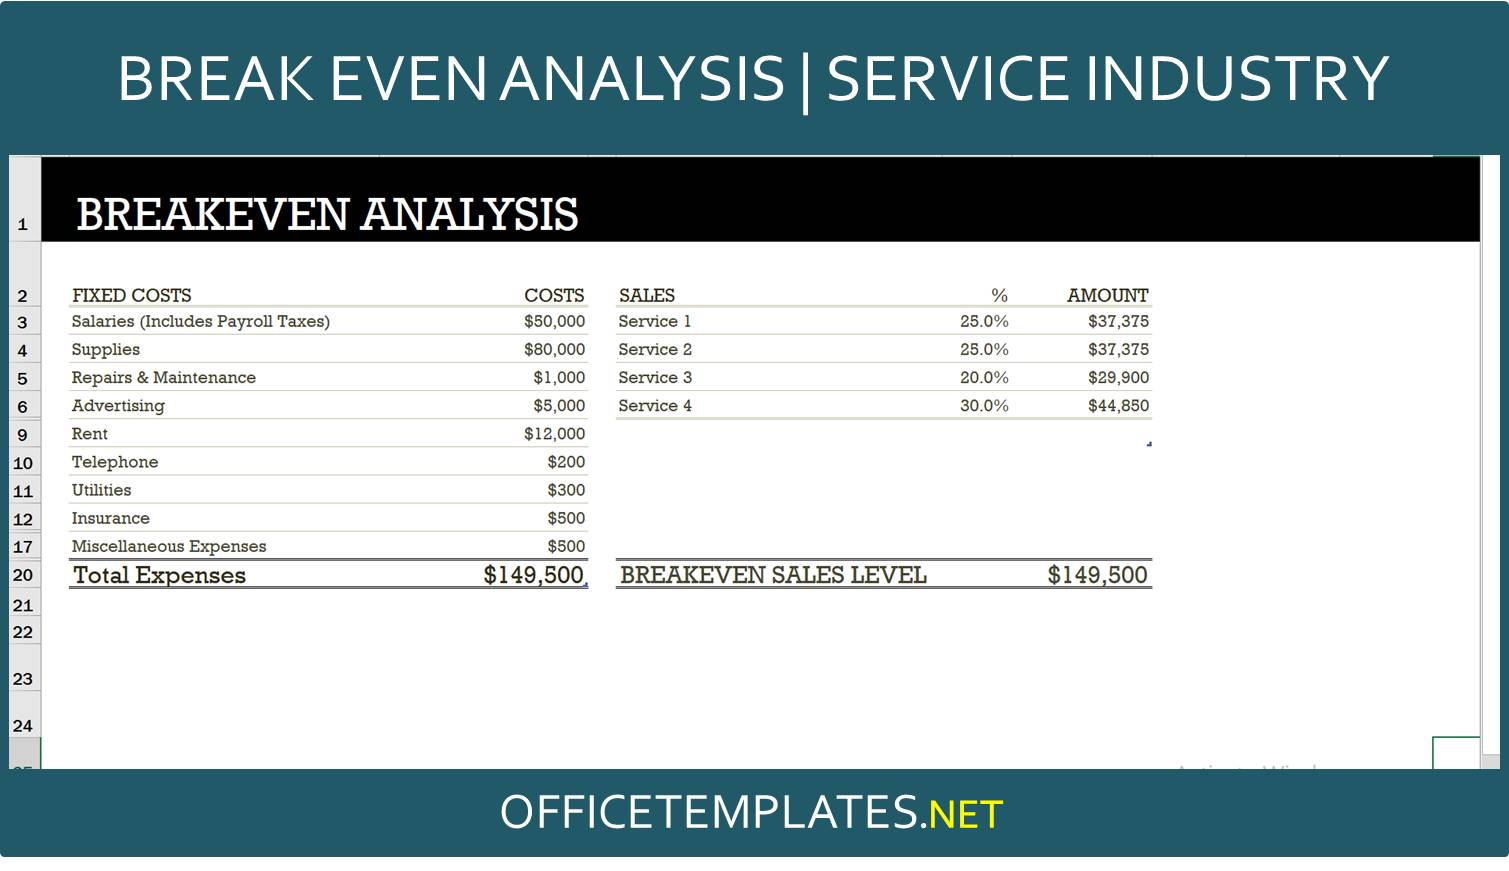 Break Even Analysis For Service Industry Template Officetemplates Net Simple break even analysis template